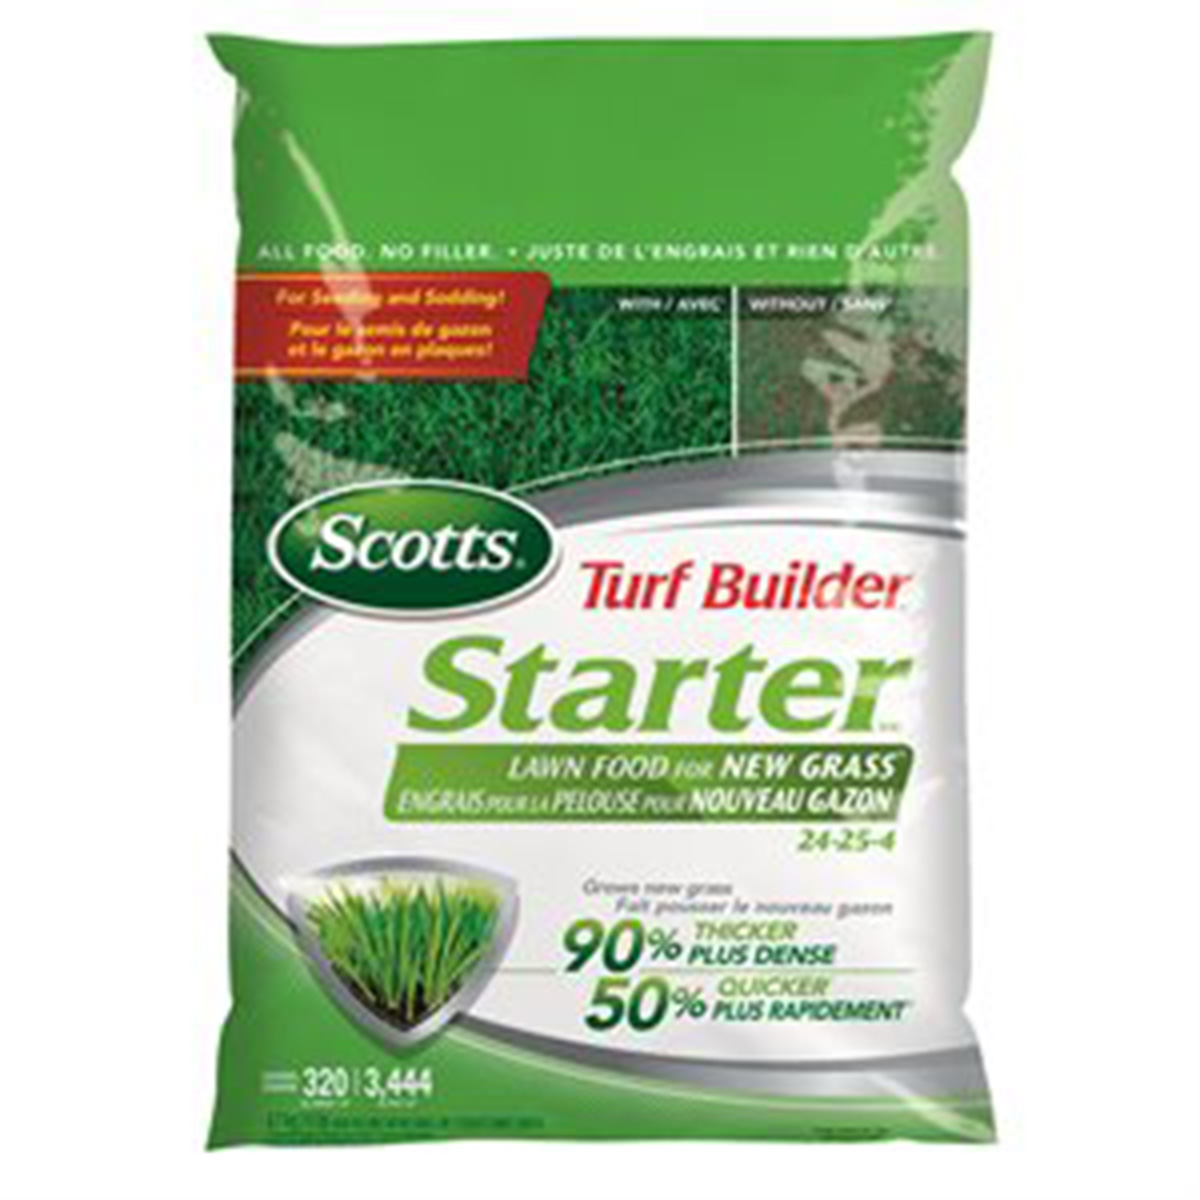 Scotts-Turf_Builder_Starter_Lawn_Food_24-25-4_1200.jpg